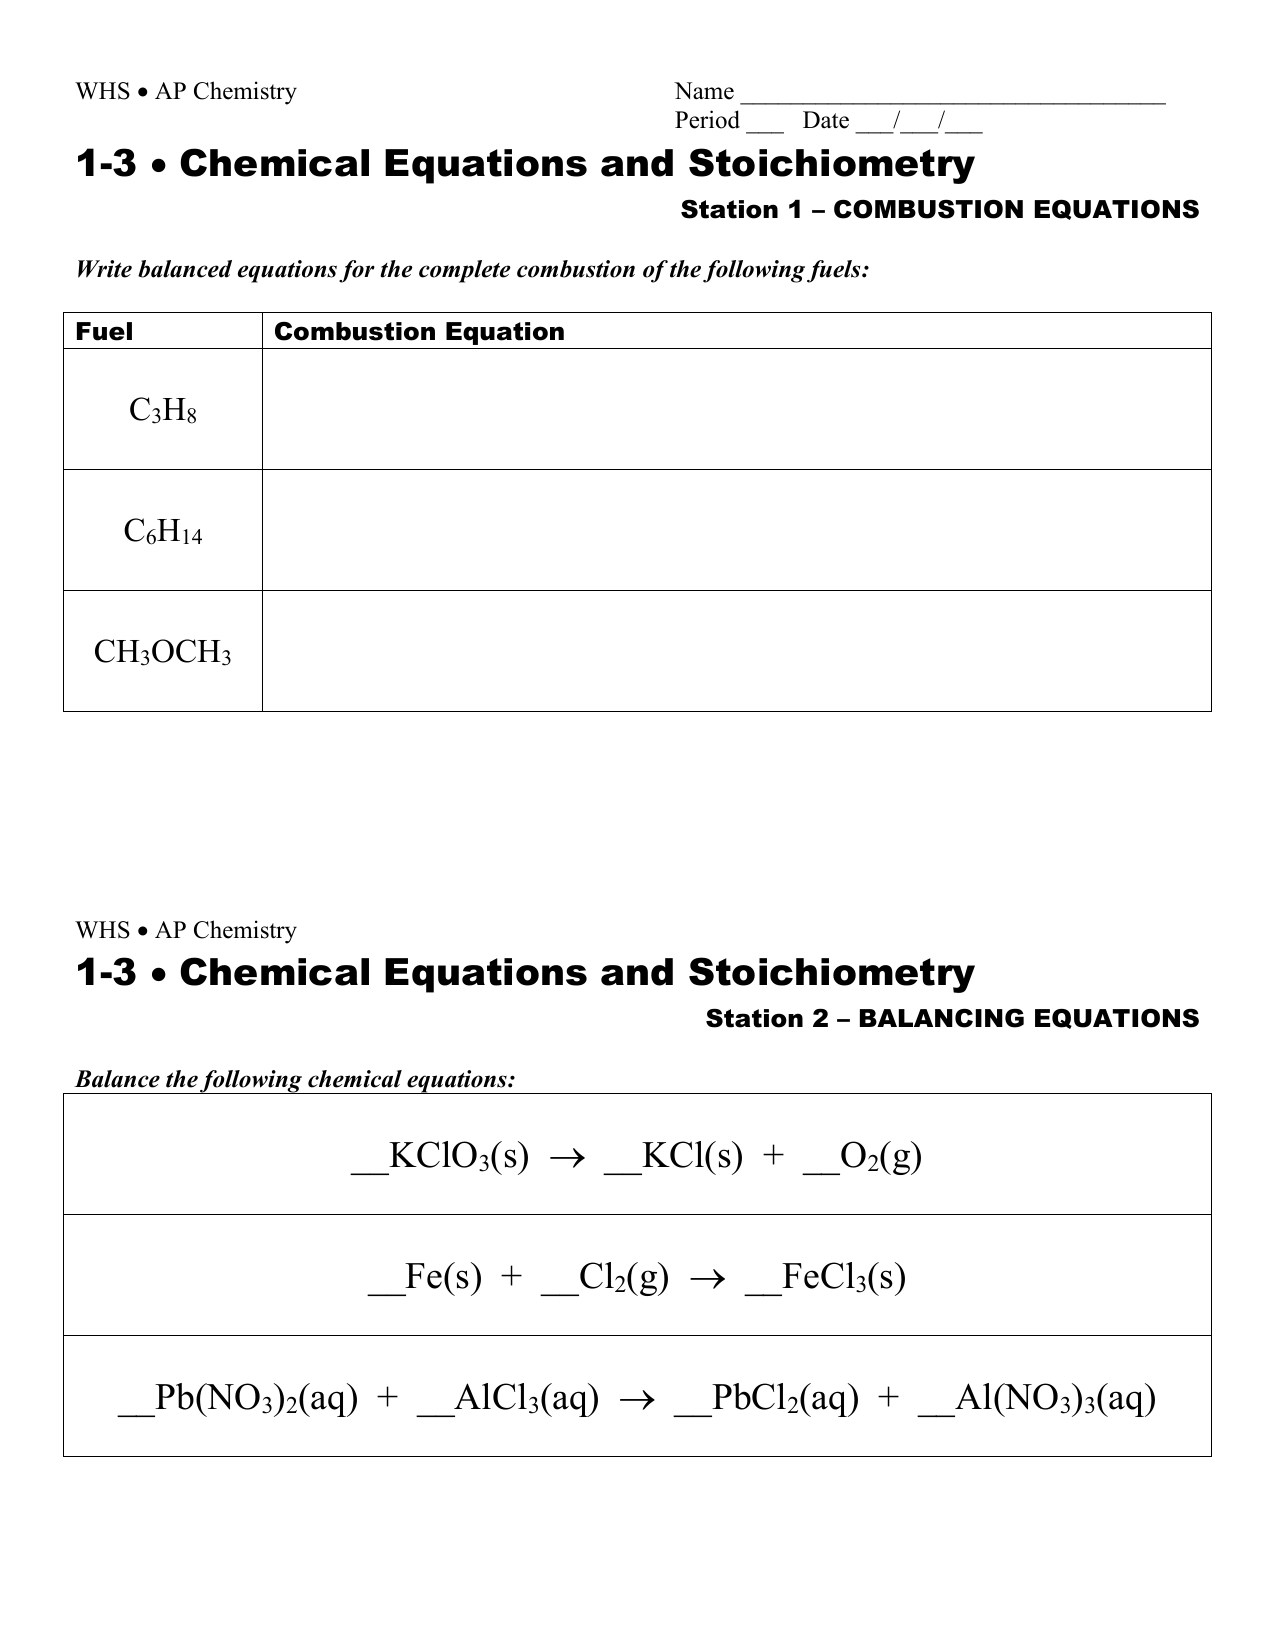 Chemical Equations And Stoichiometry Combustion Worksheet